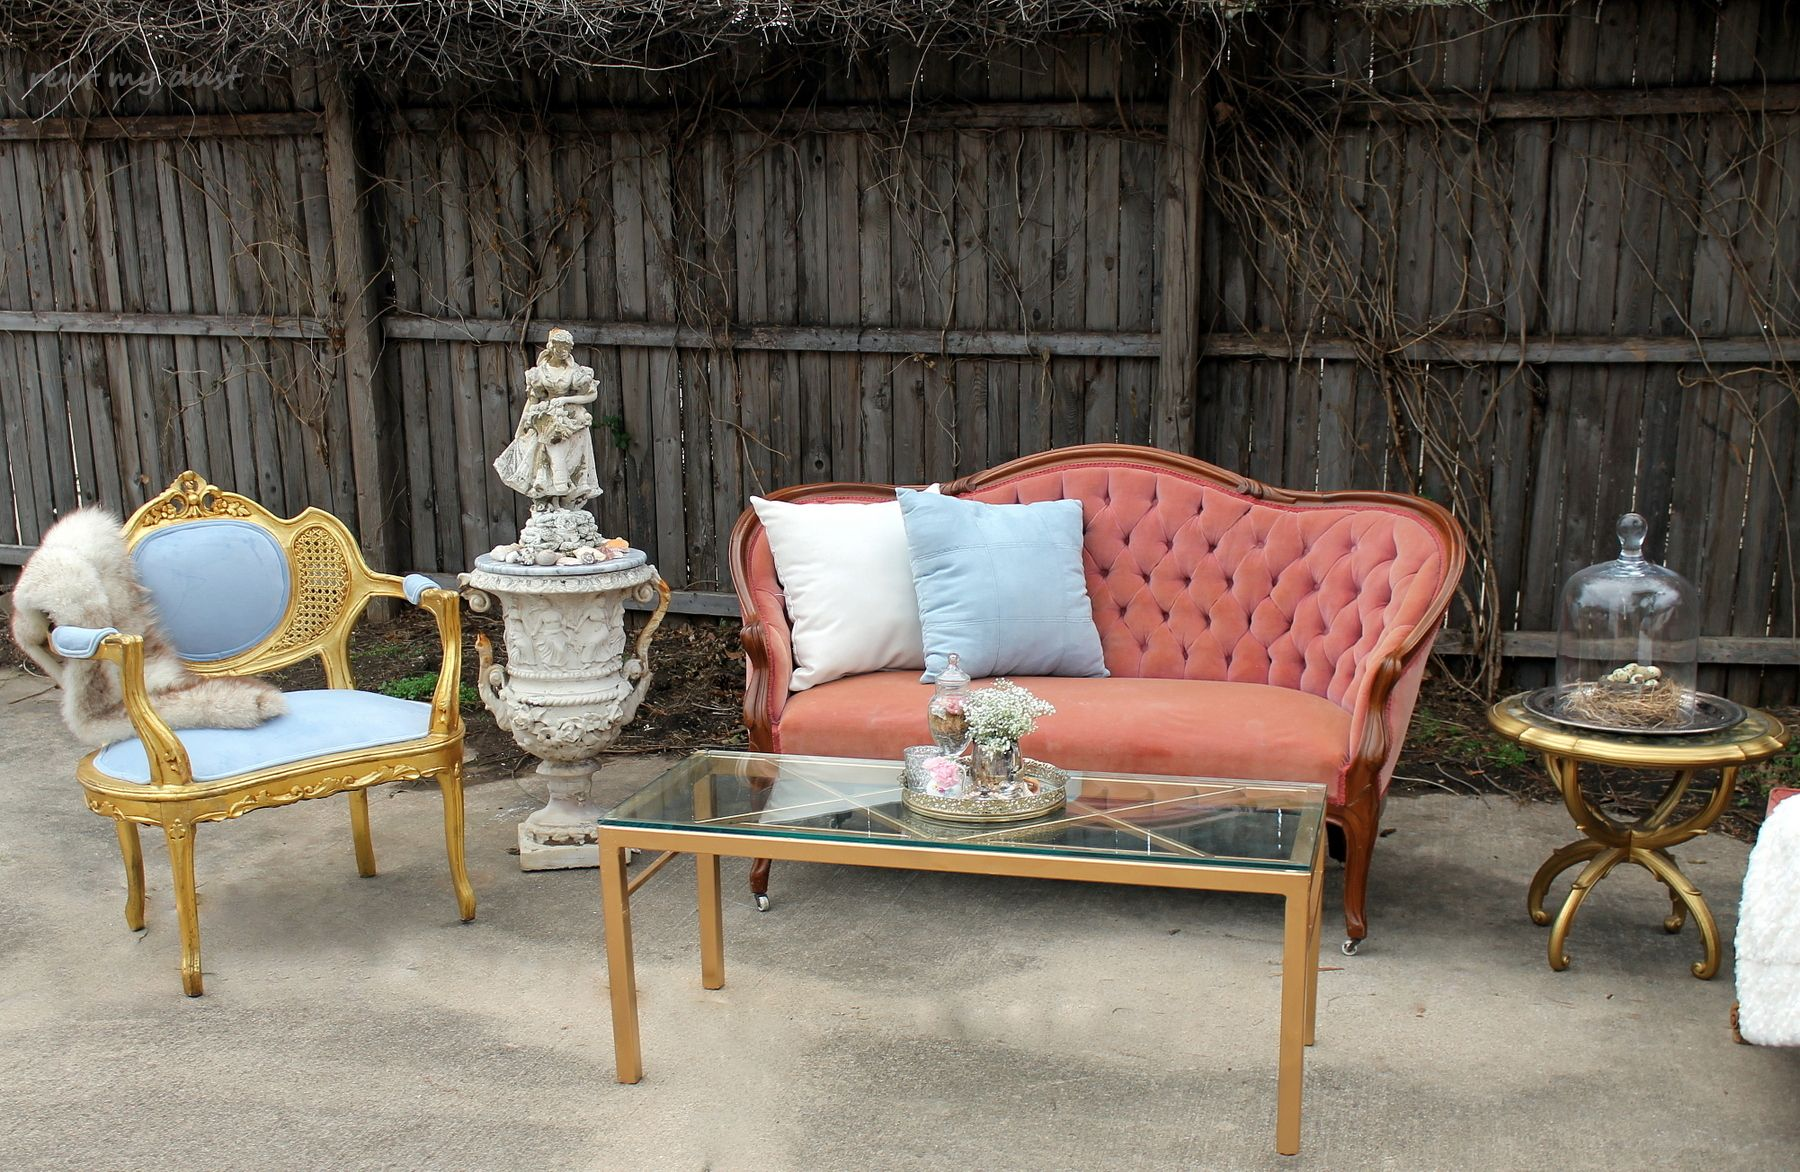 Rent My Dust Vintage Lounge Areau0027s For Your Wedding!   Blog   RENT MY DUST Vintage  Rentals. This Is For The Pink Bride Or Shabby Chic Bride Featuring Our ...